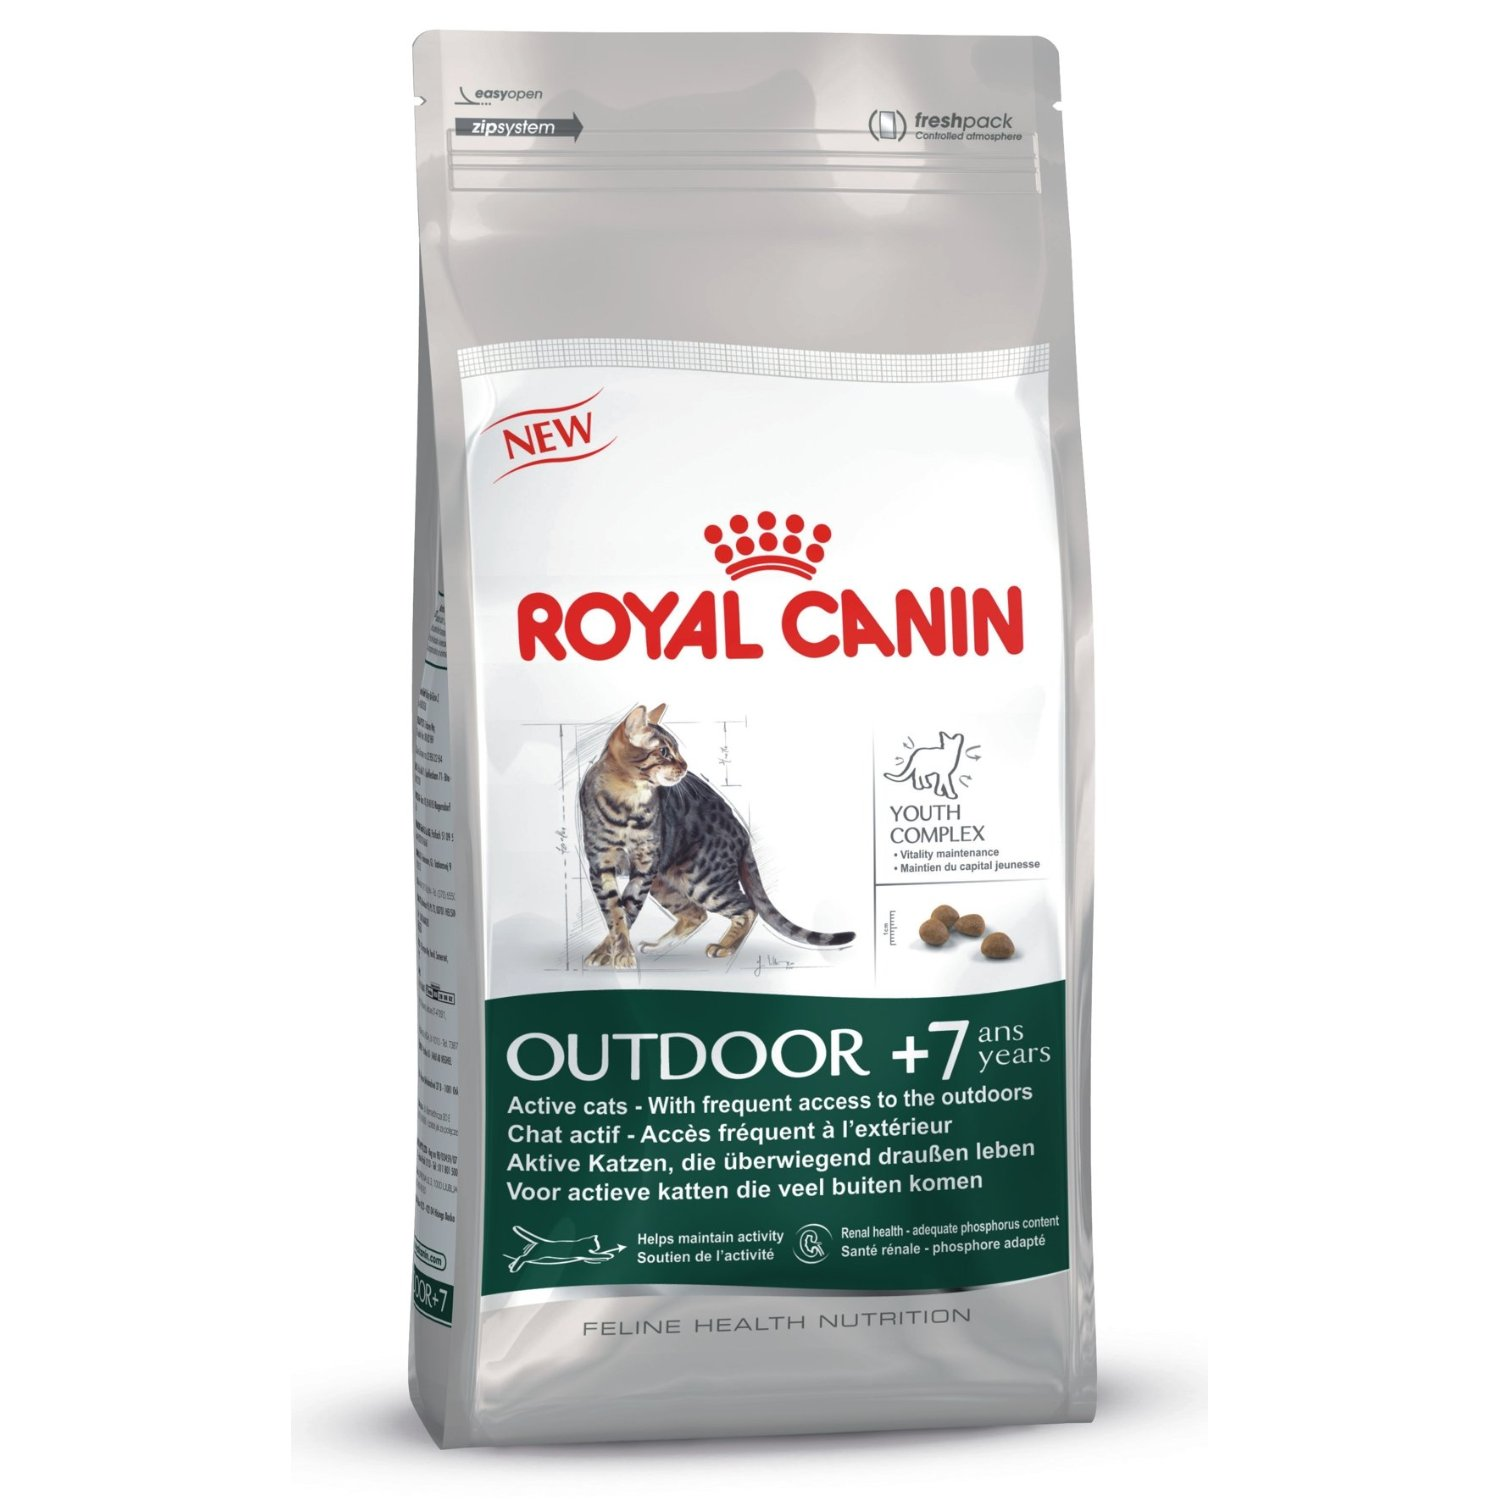 Royal Canin Outdoor +7 Cat Food